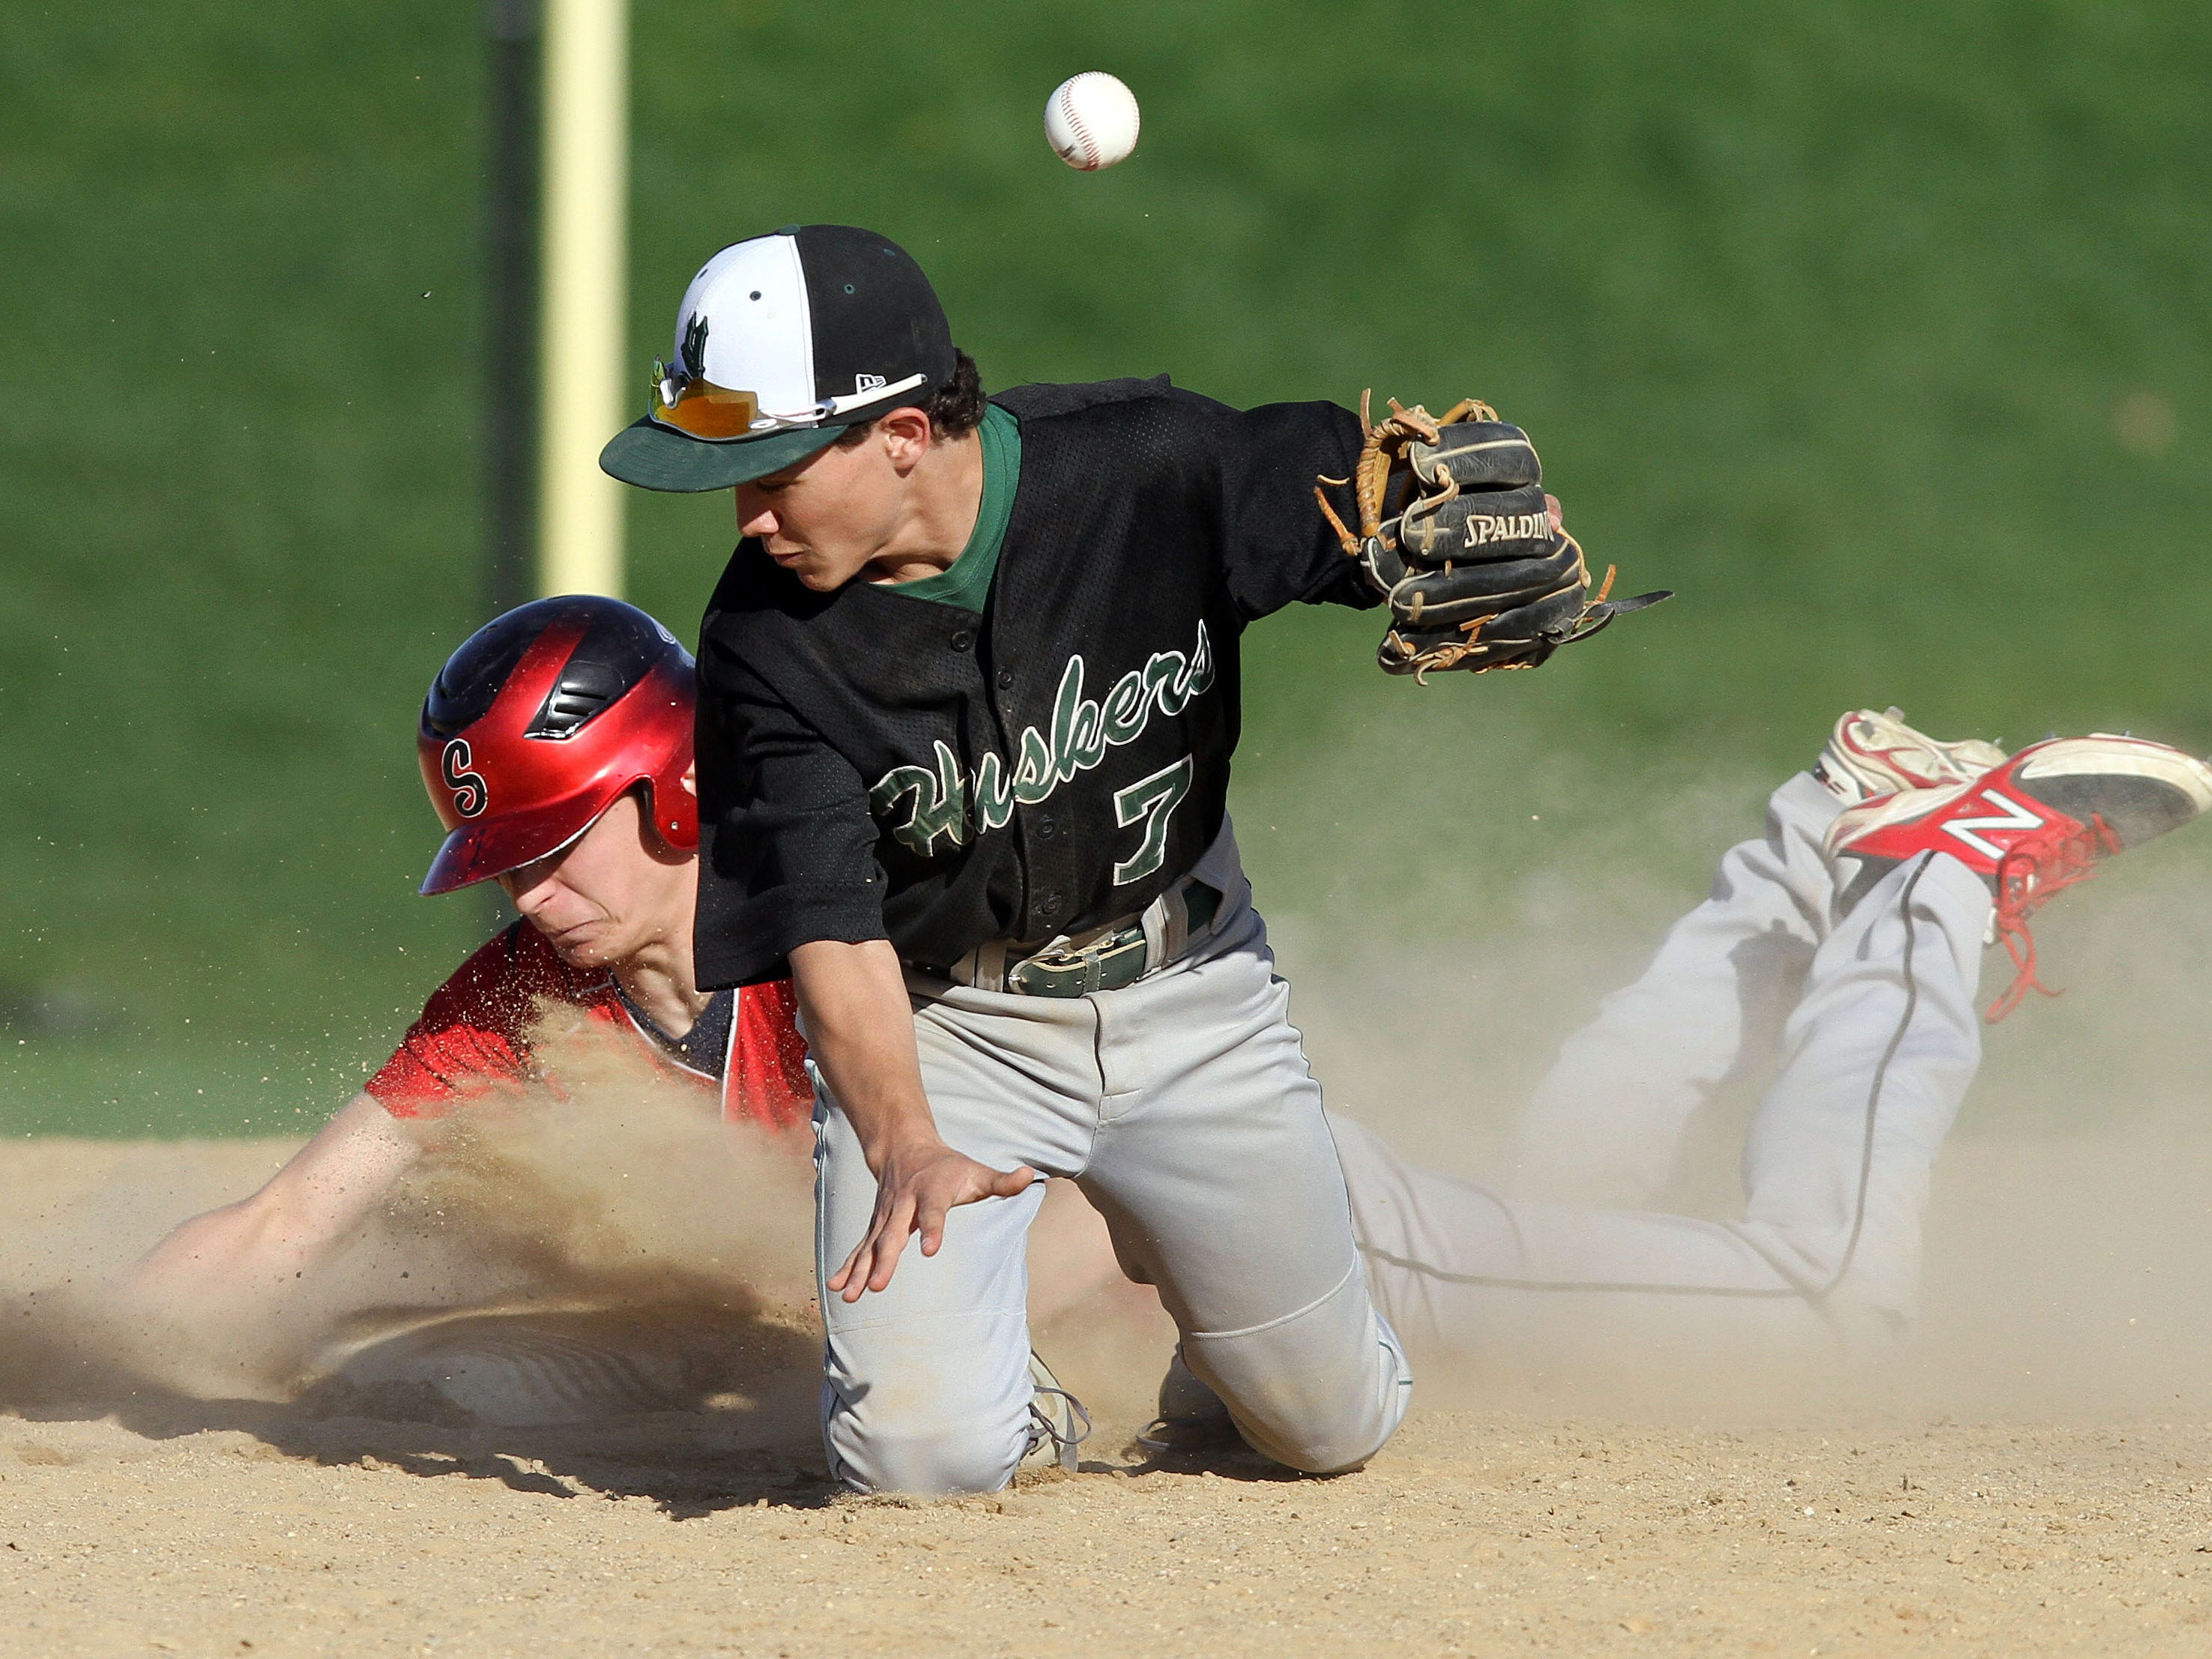 Yorktown's Jake Bichler (7) can't handle the throw as Somers Mike Acocella (10) slides safe into second with a stolen base during a baseball game at Somers High School April 29, 2015. Somers won the game 7-5.